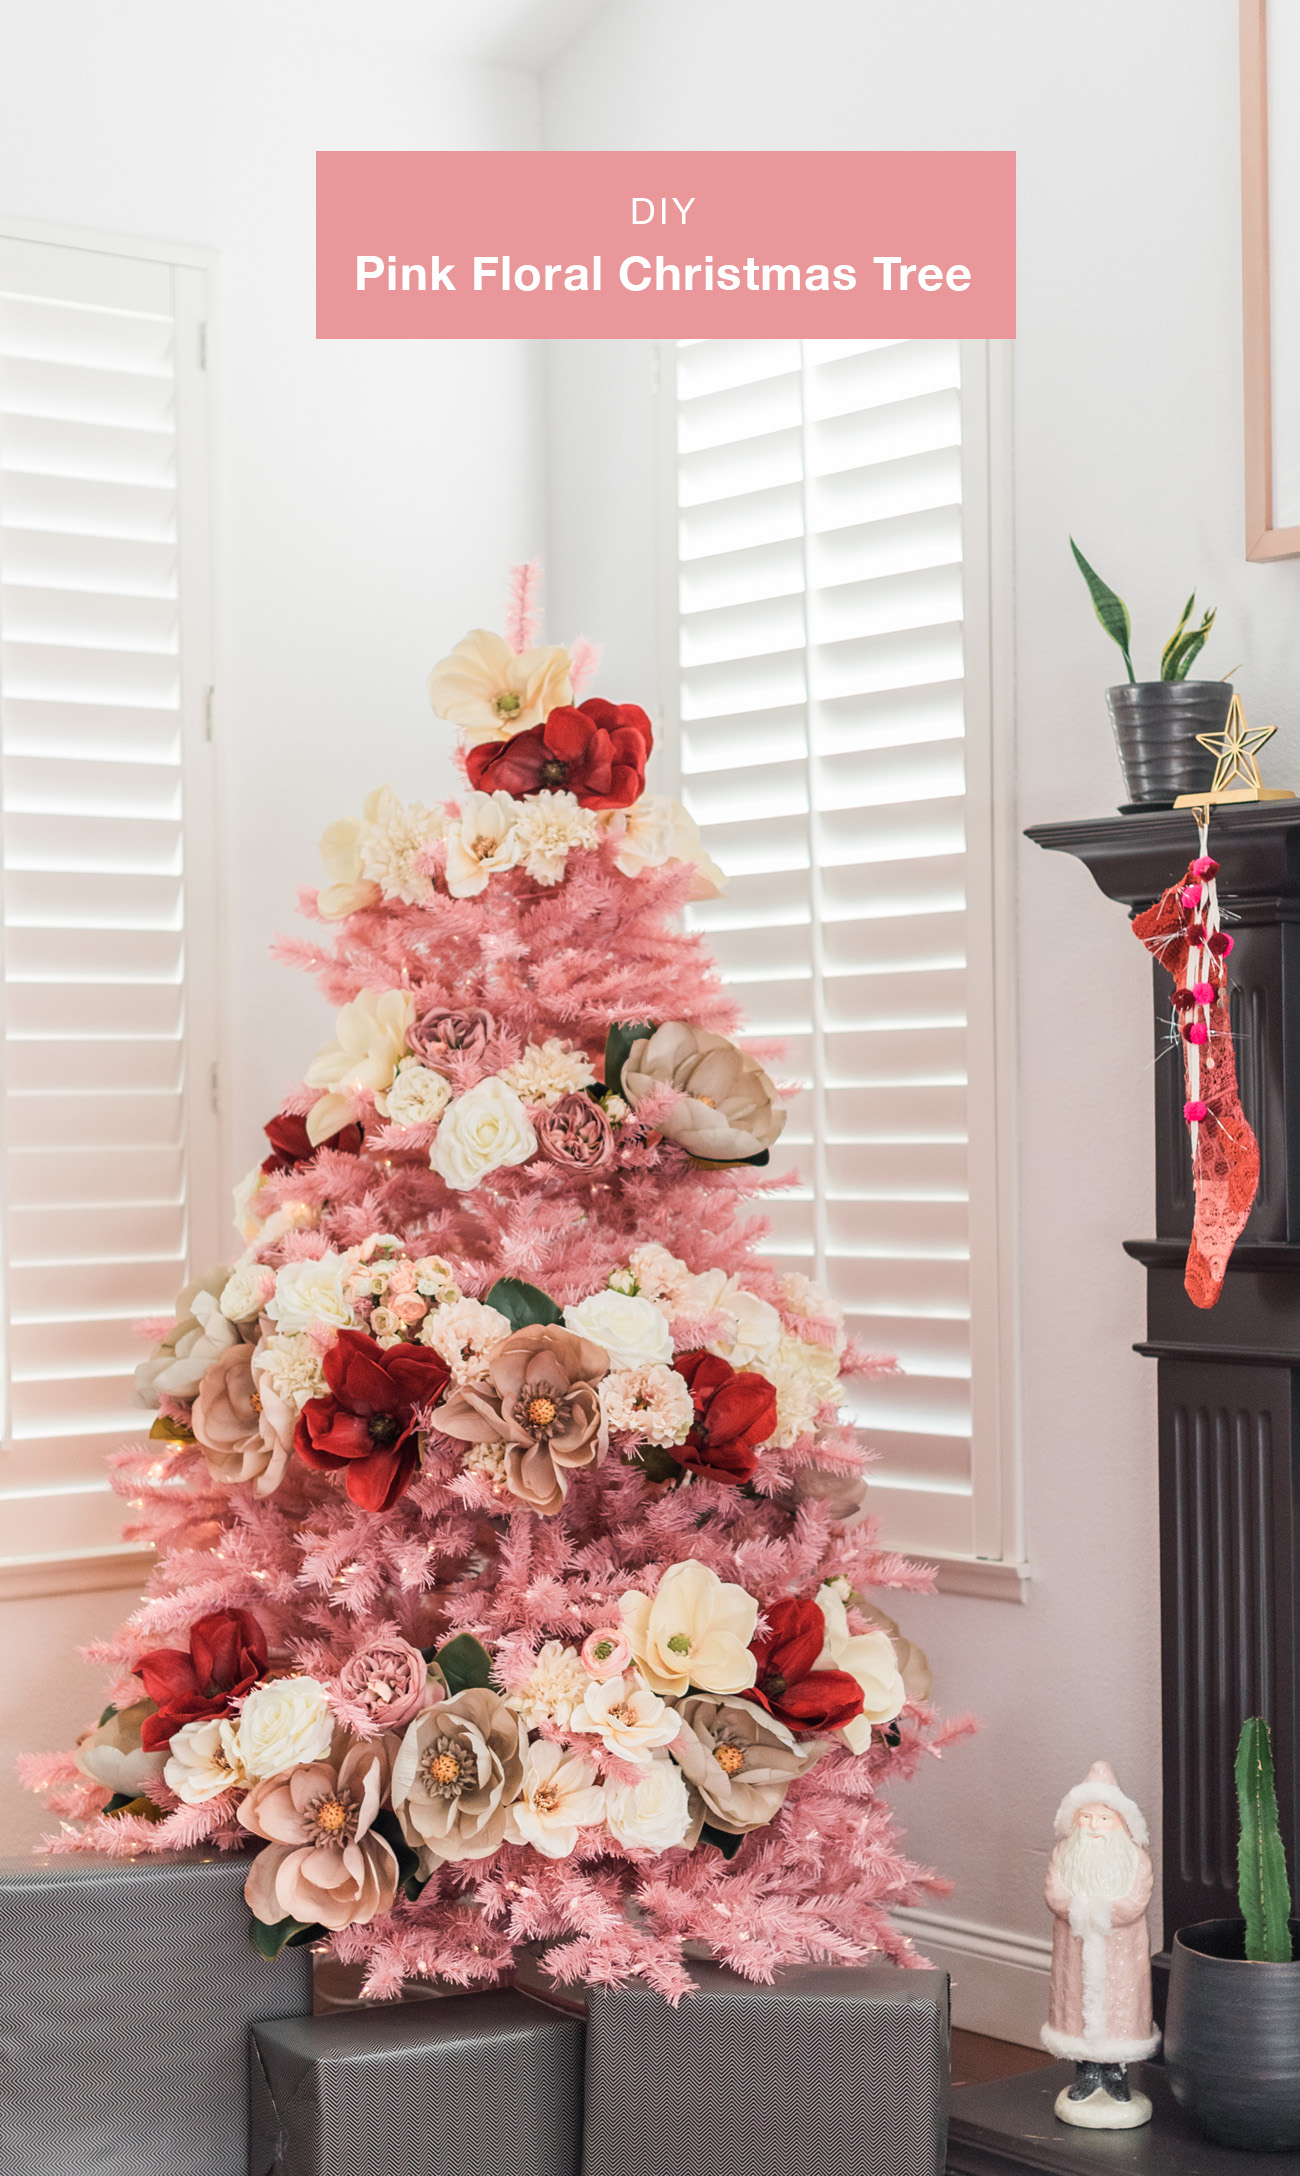 DIY a Pink Floral Christmas Tree